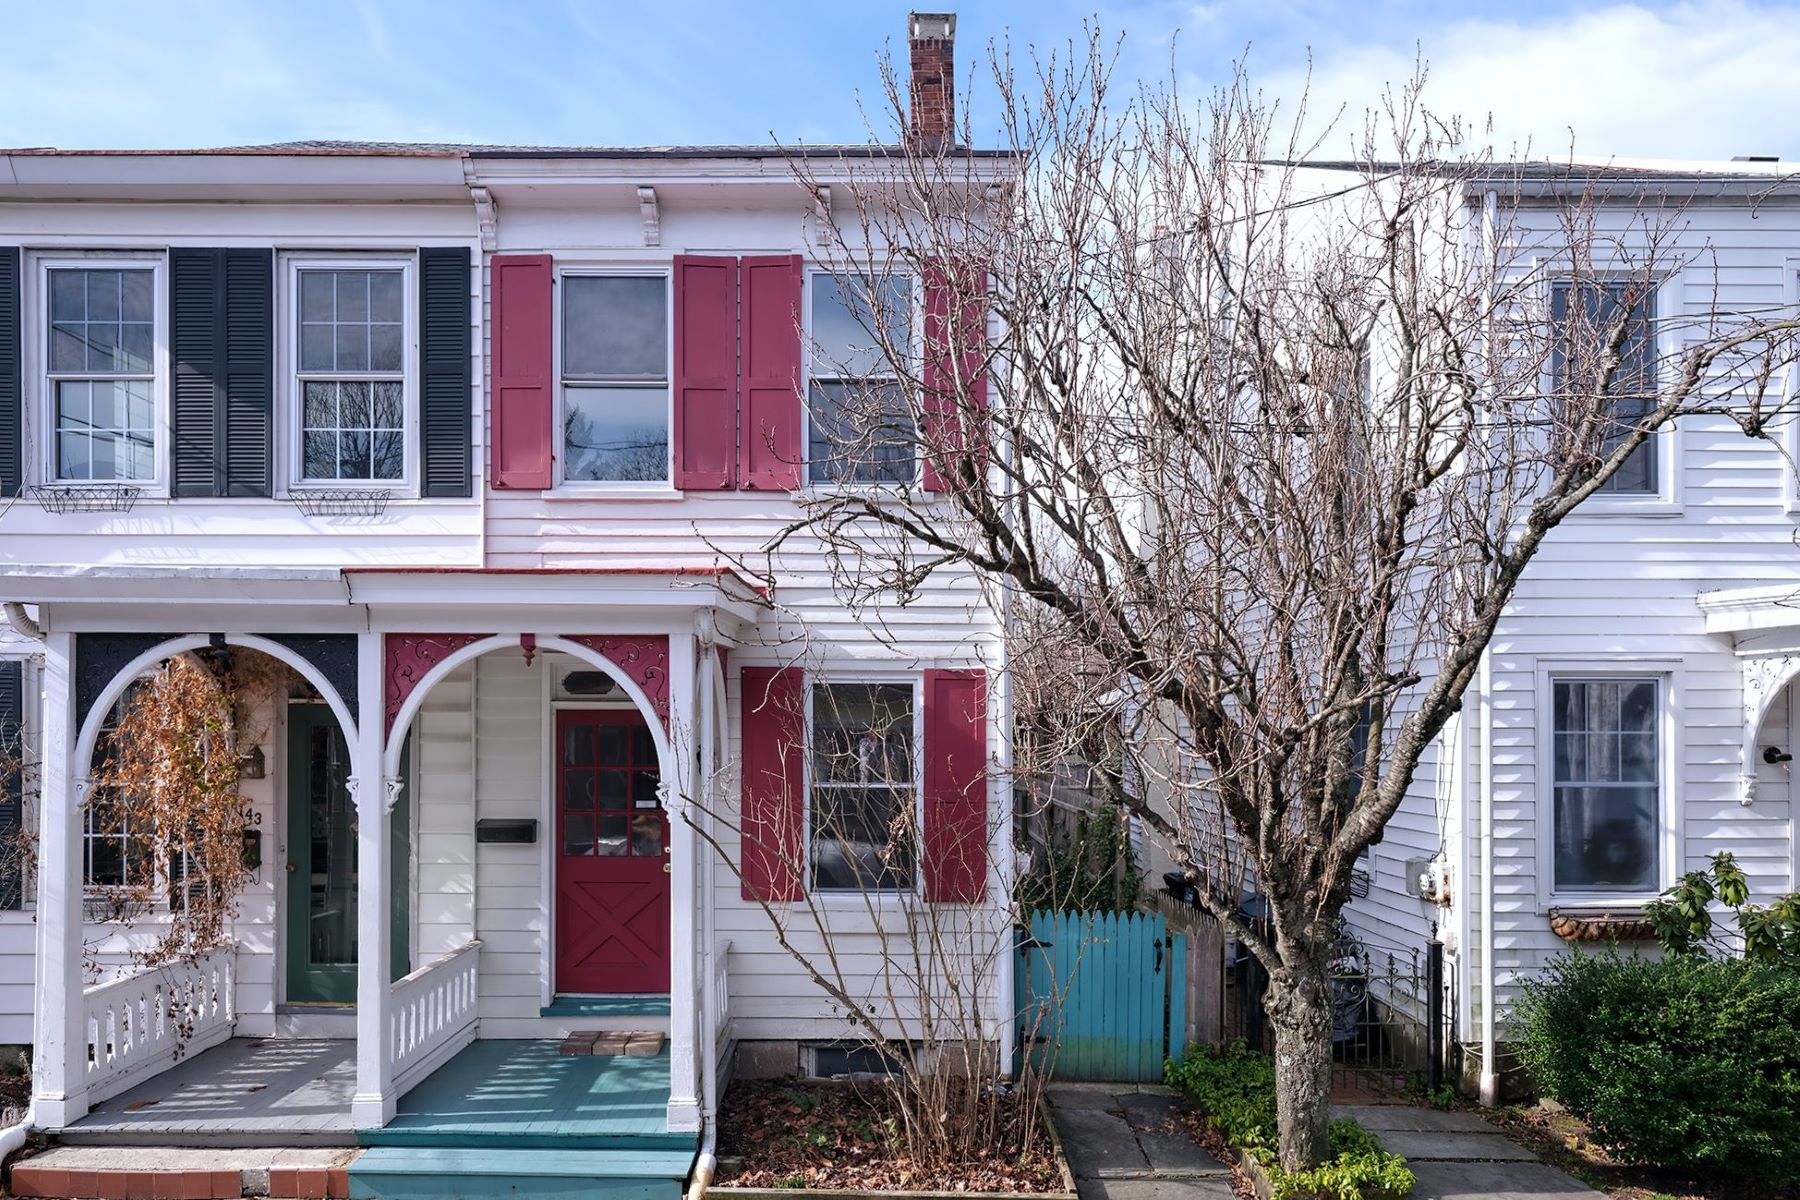 Duplex Homes for Sale at Sweetest Home Awaiting its Next Chapter 145 George Street, Lambertville, New Jersey 08530 United States